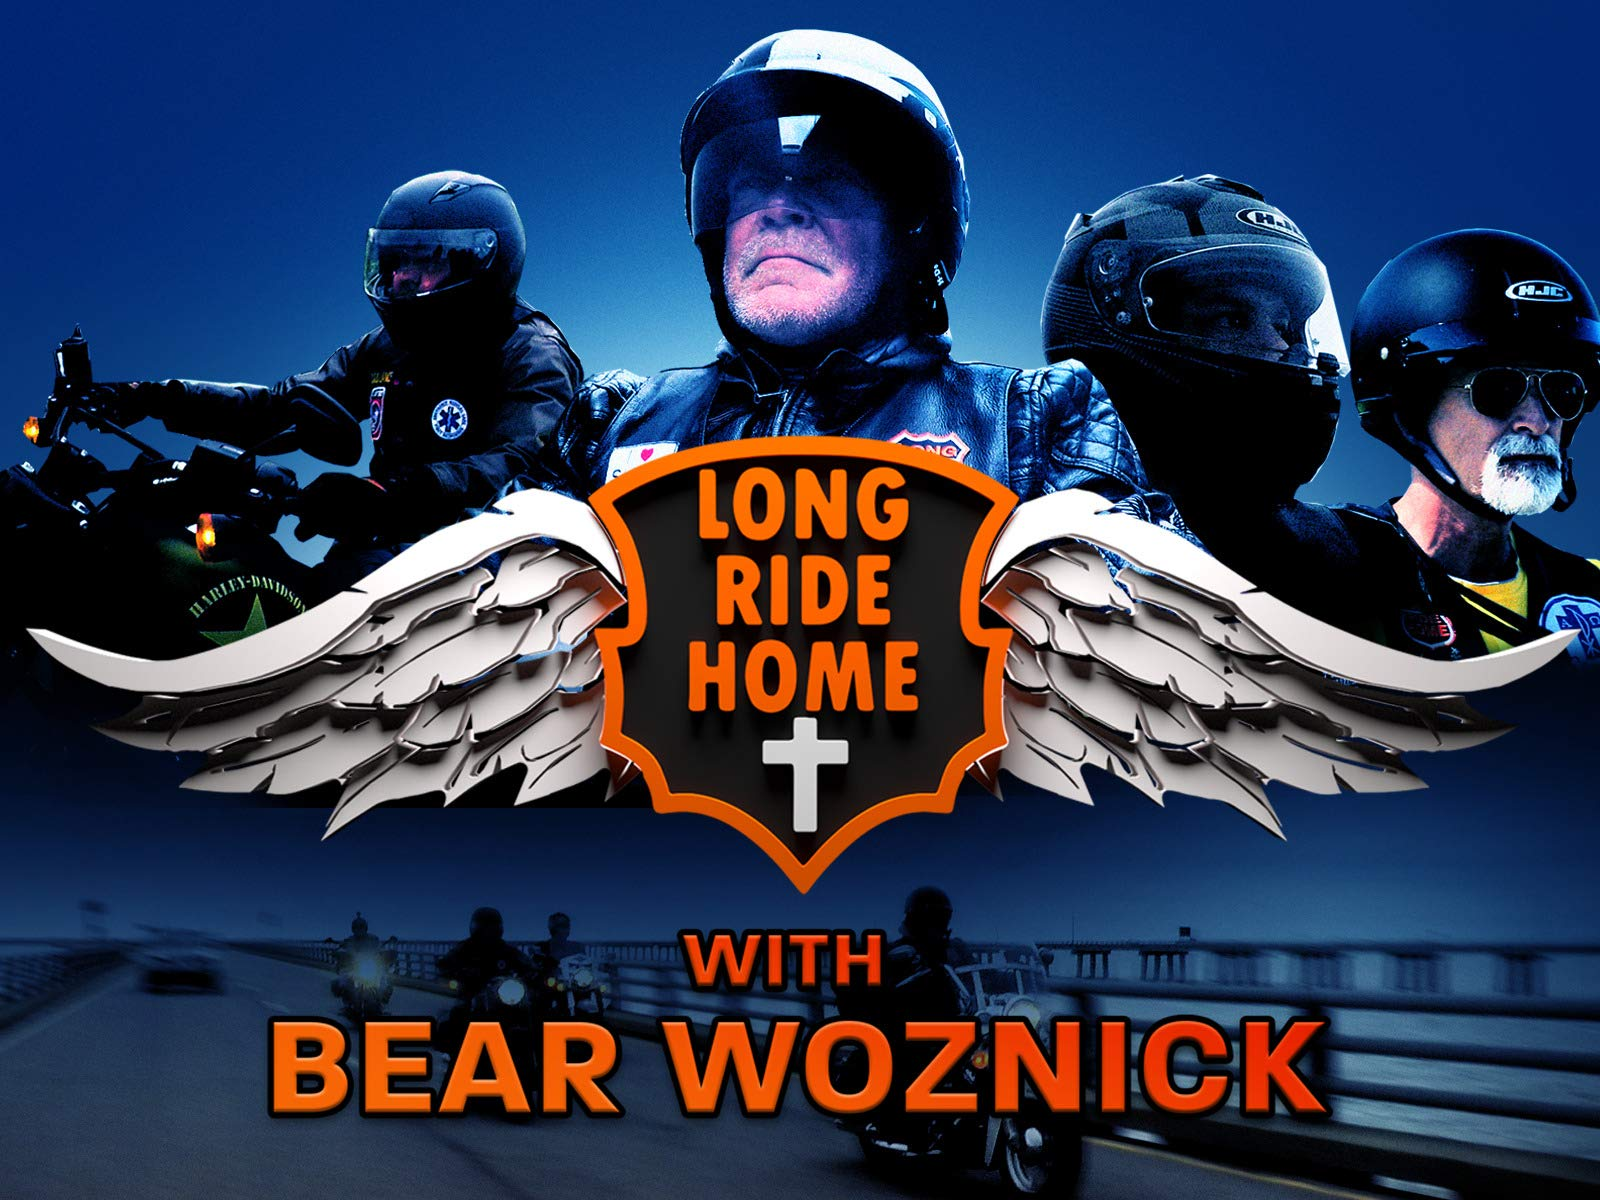 Long Ride Home with Bear Woznick